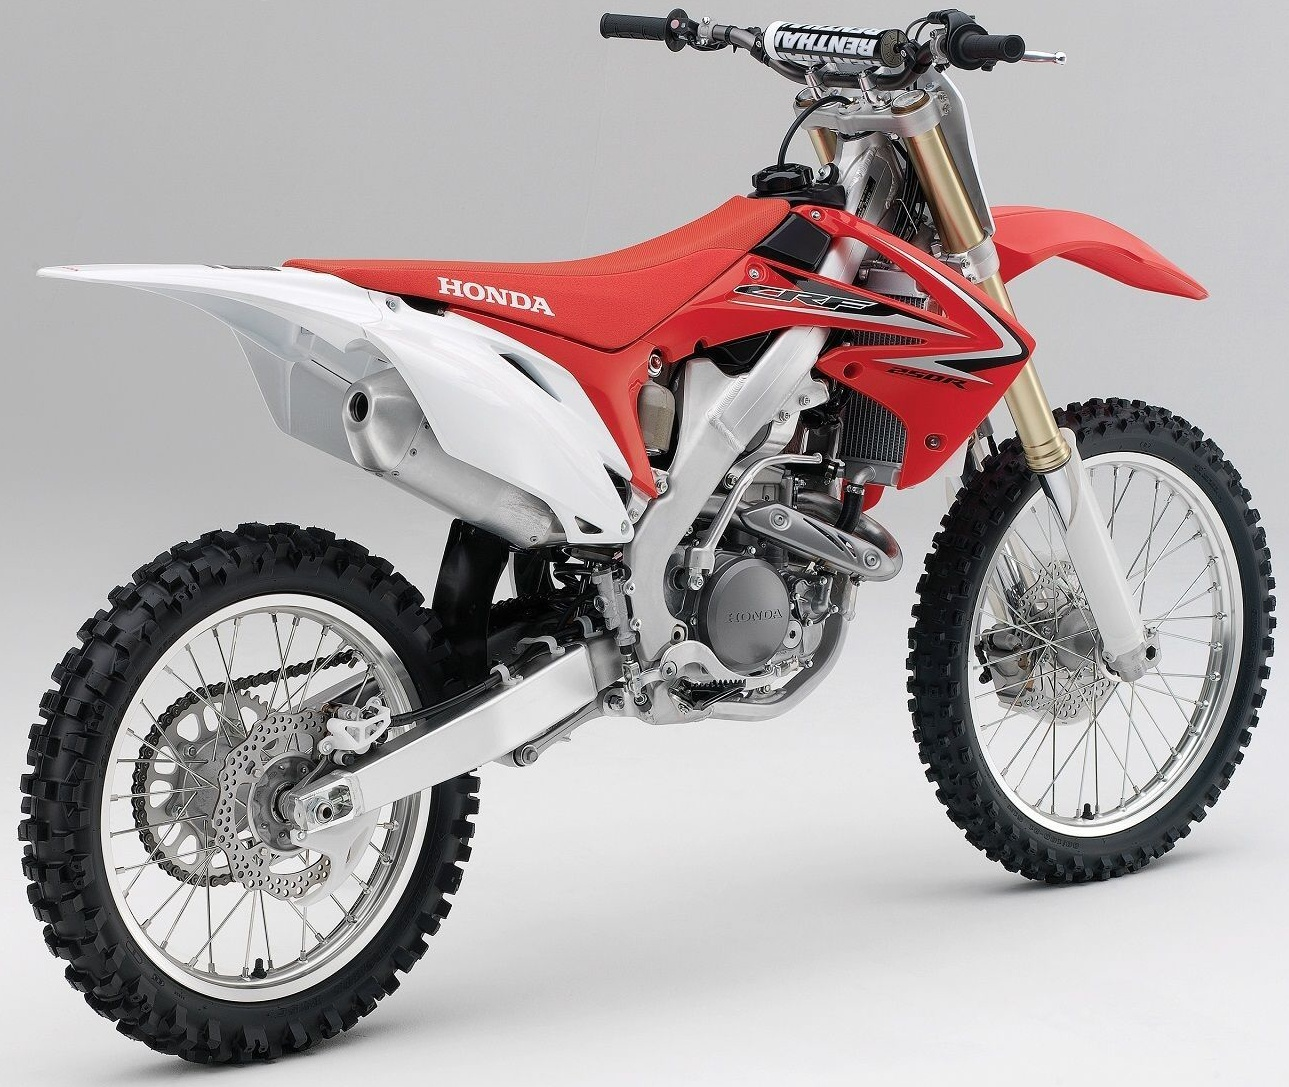 honda crf 250 r 2012. Black Bedroom Furniture Sets. Home Design Ideas